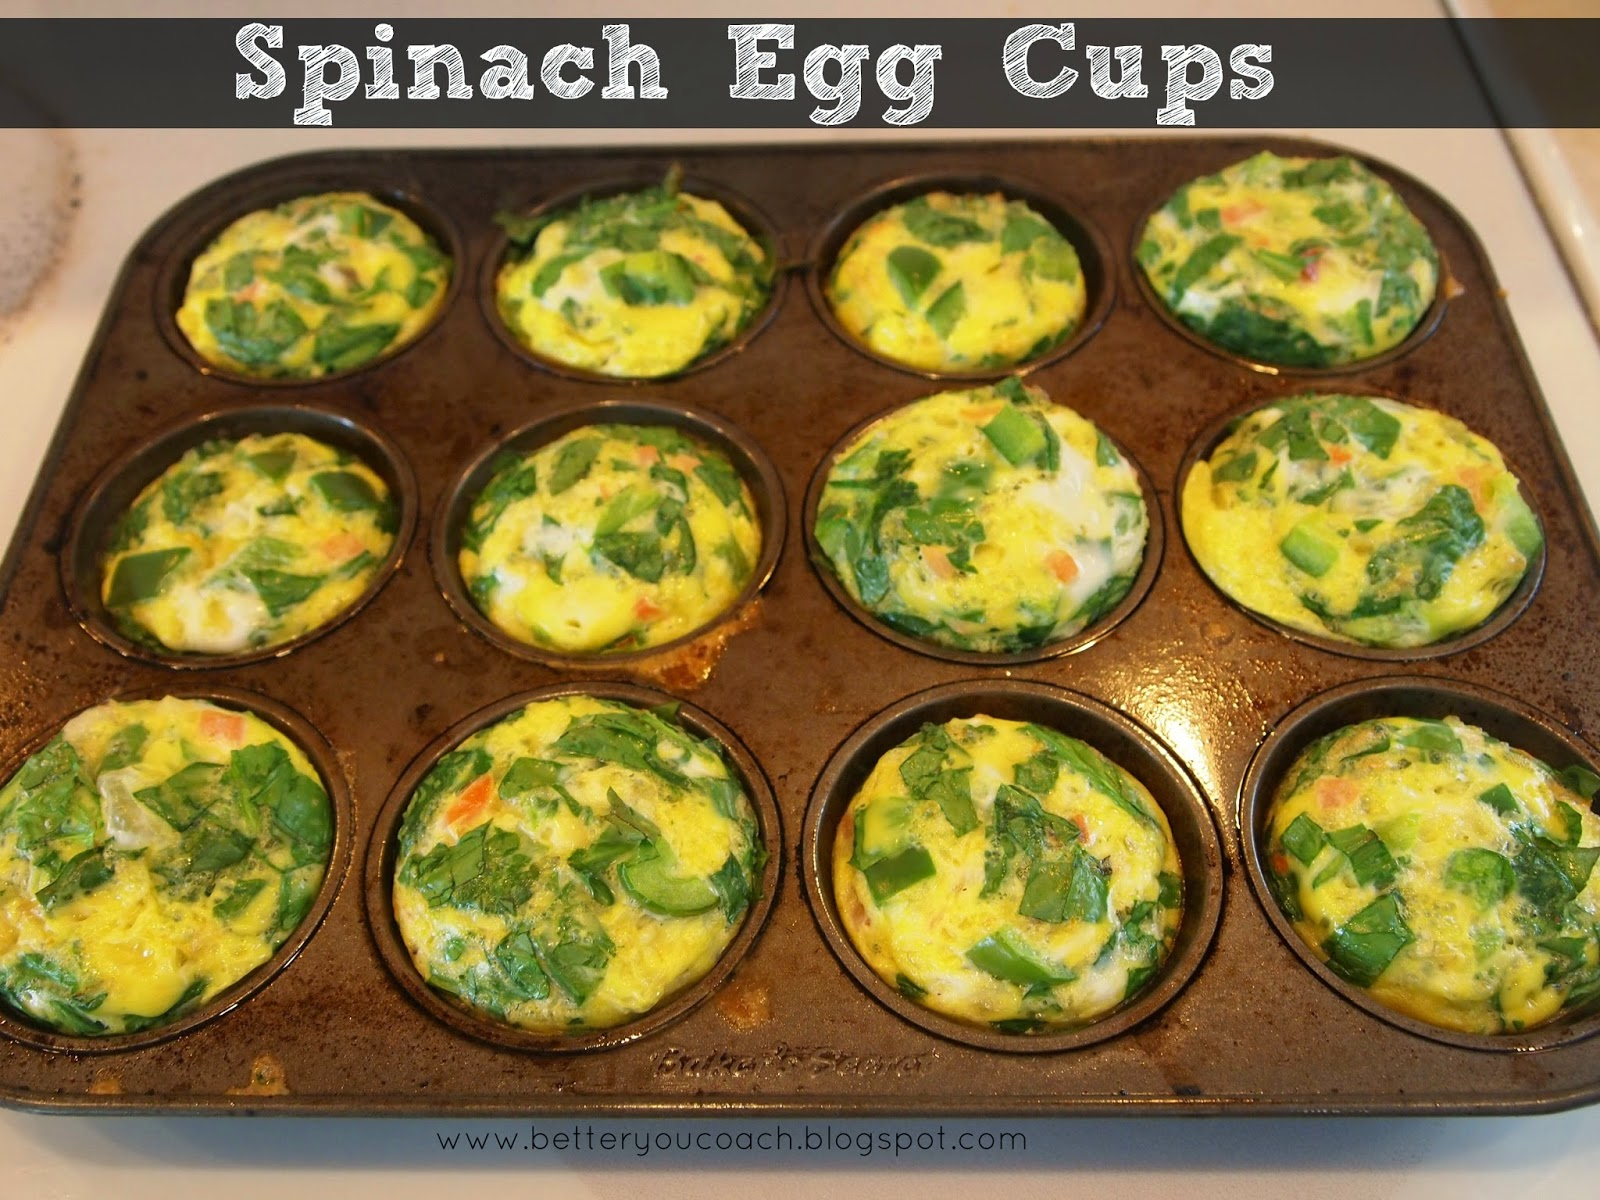 Betteryou Health Amp Fitness Spinach Egg Cups Recipe